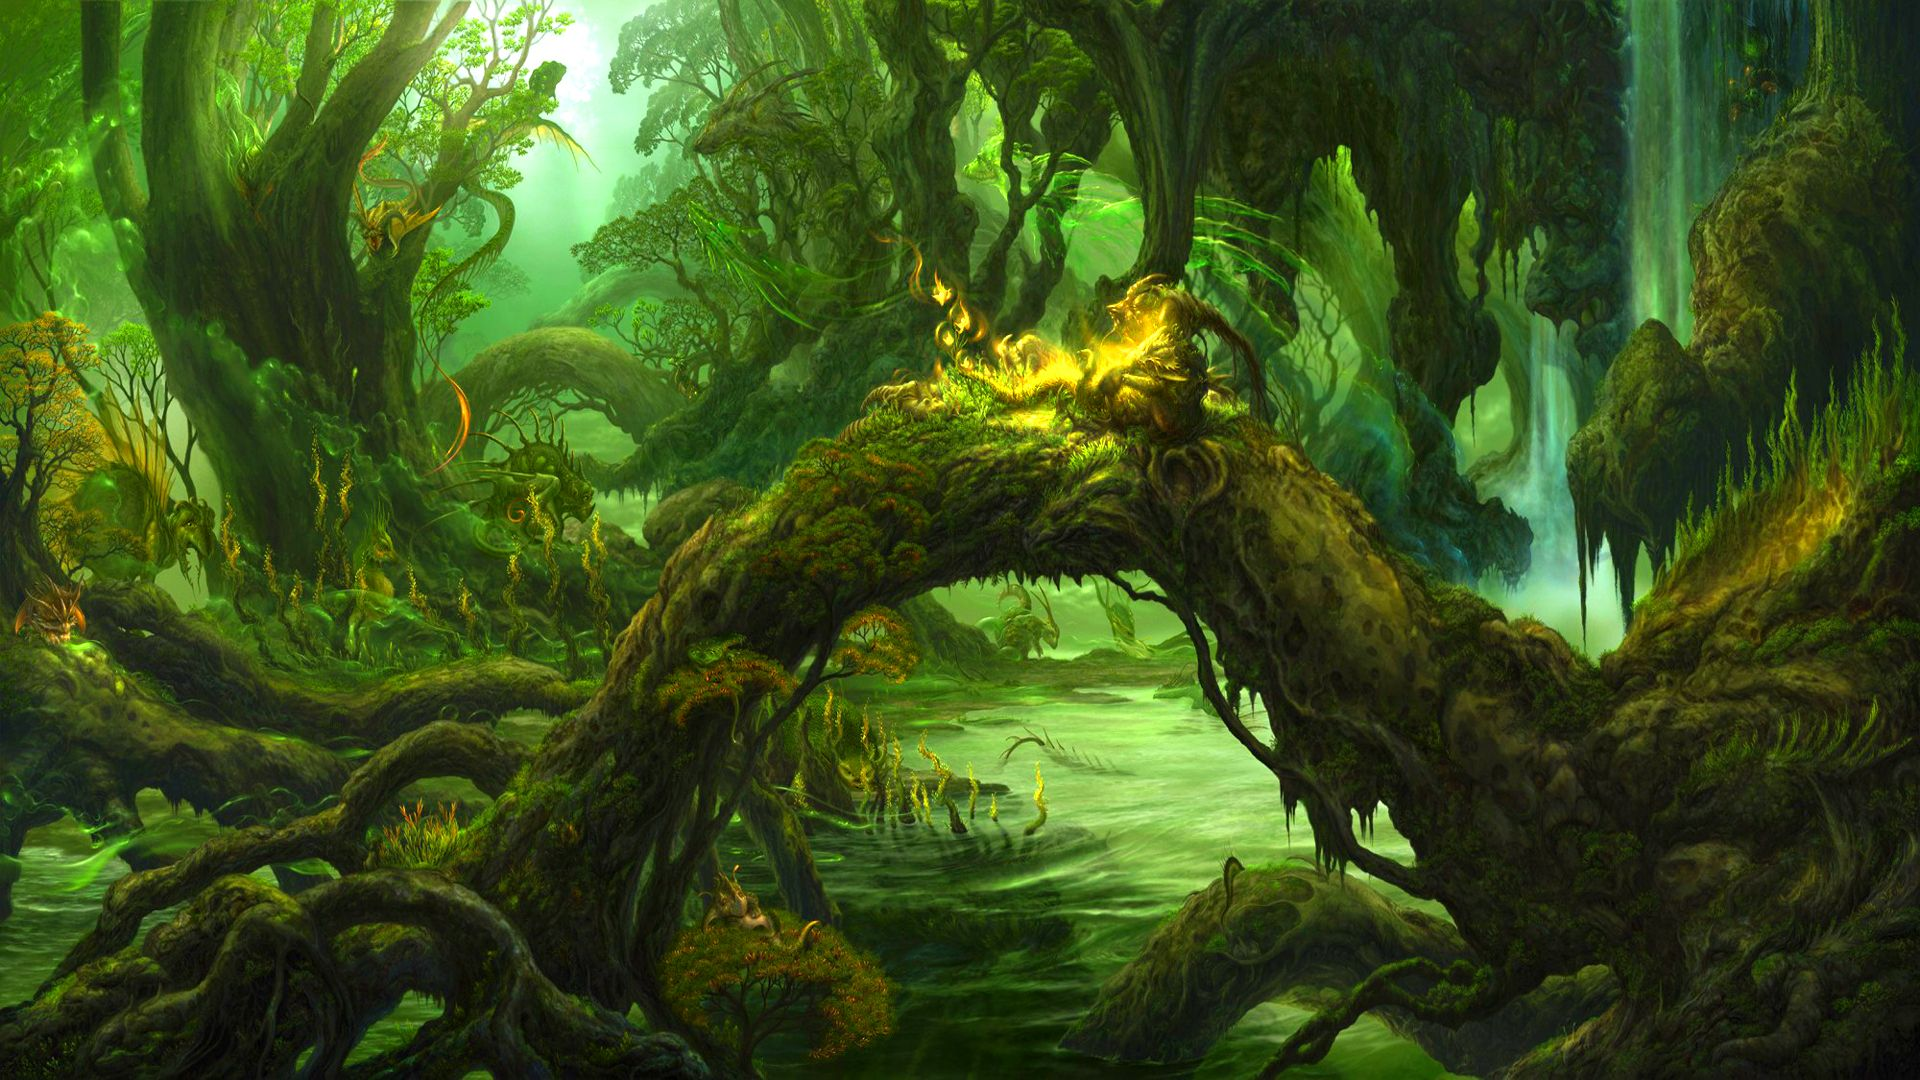 Fantasy Forest Dark Wallpaper Green Trees Creatures Character Art Digital Forests